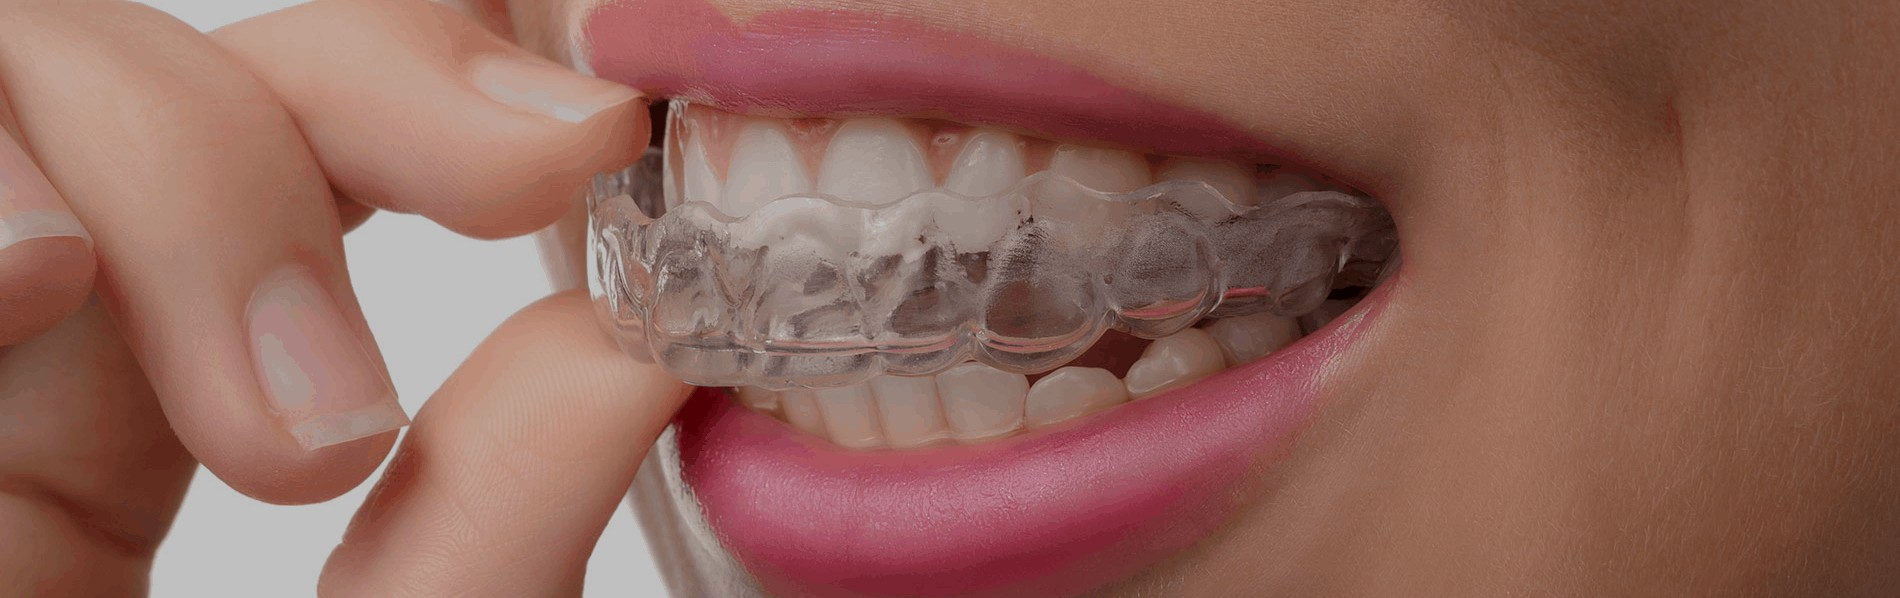 Orthodontics Clear Aligners over Braces